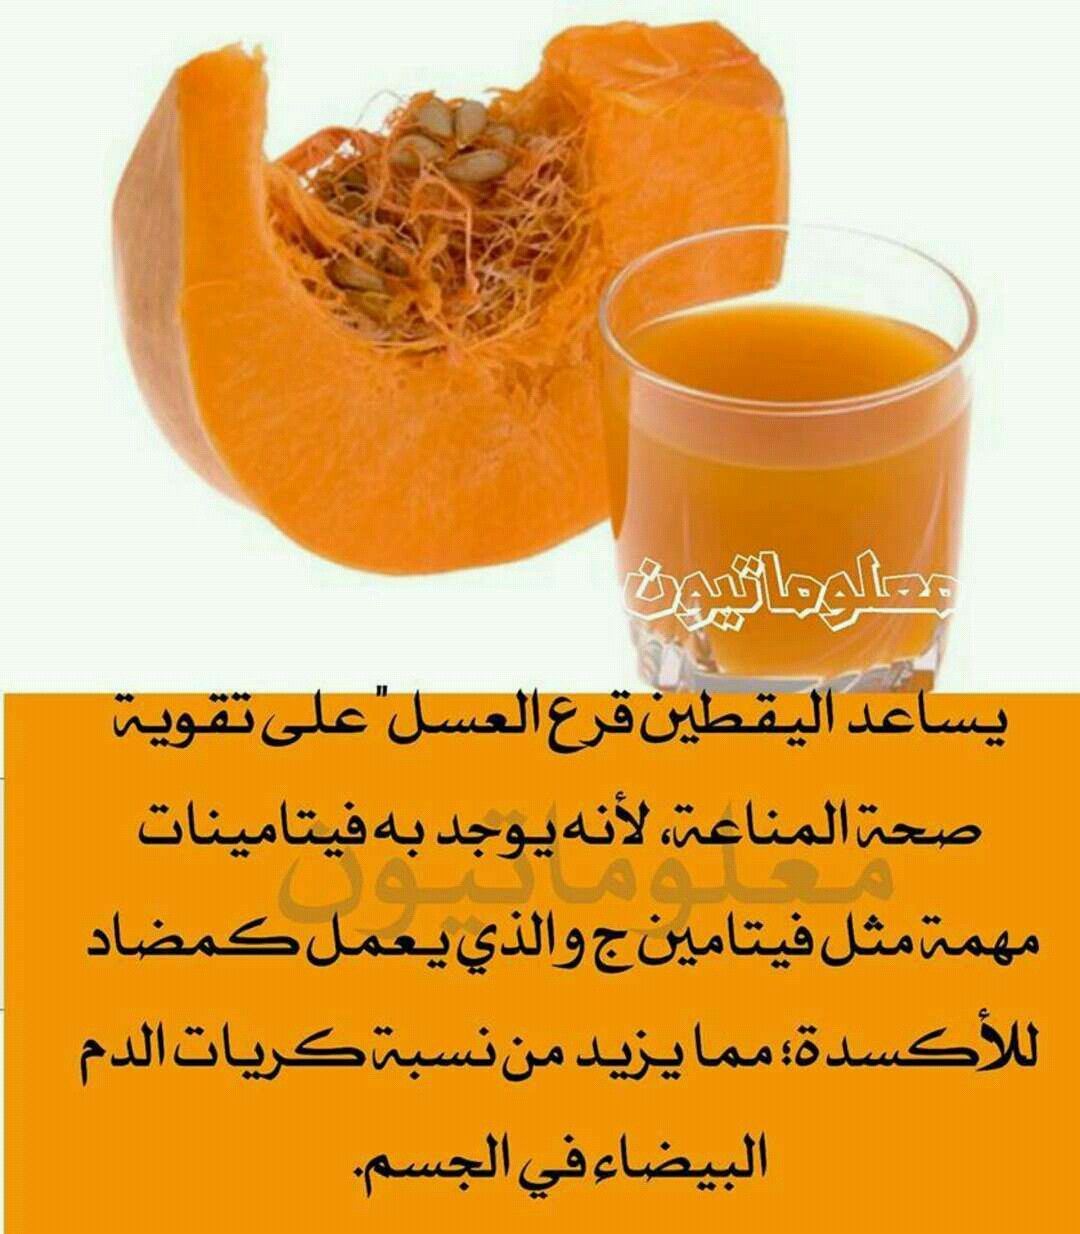 Pin By Med Iyed Mahiddine On Arabic Natural Medicine Healthy Drinks Smoothies Health Food Food Facts